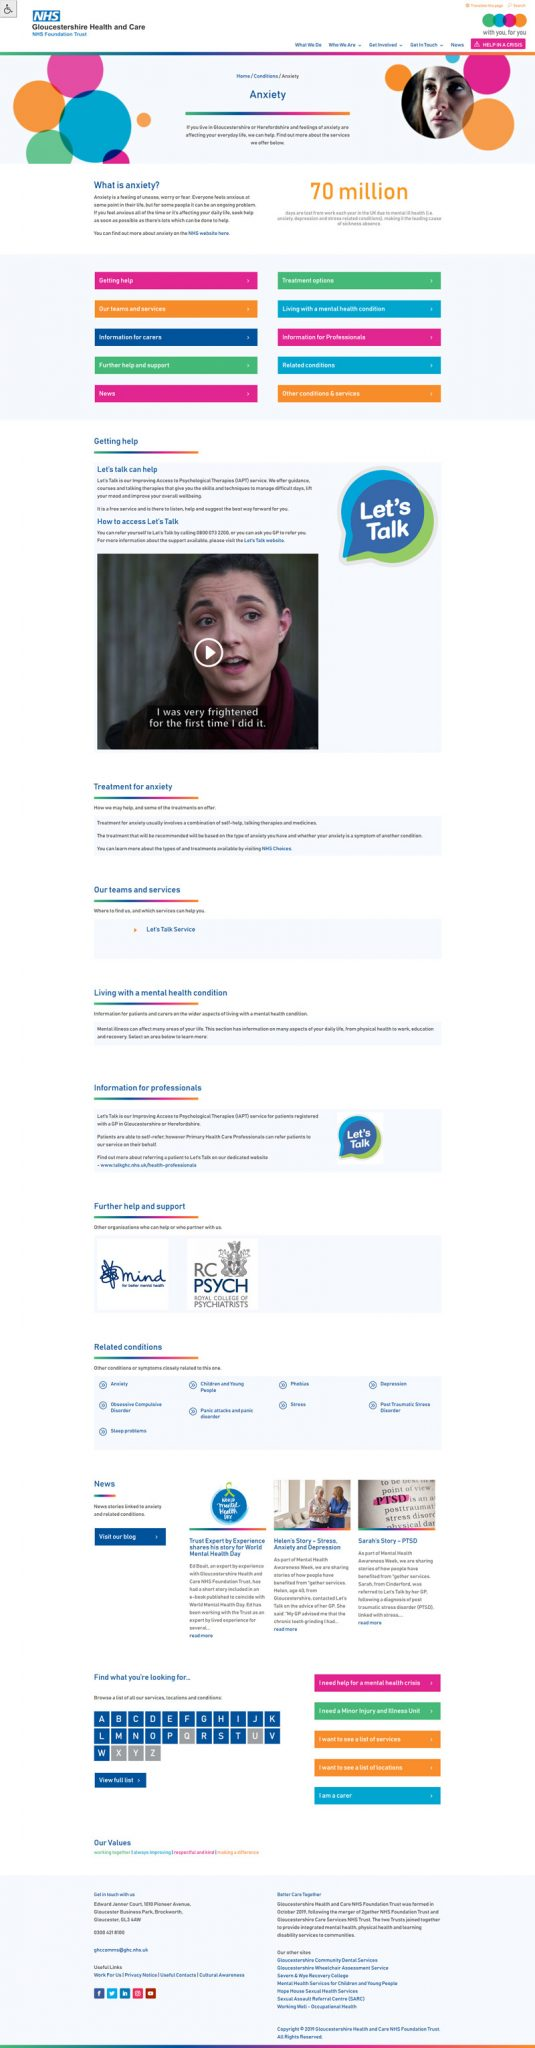 NHS 2gether website by Practically.io - Experts in web design and development